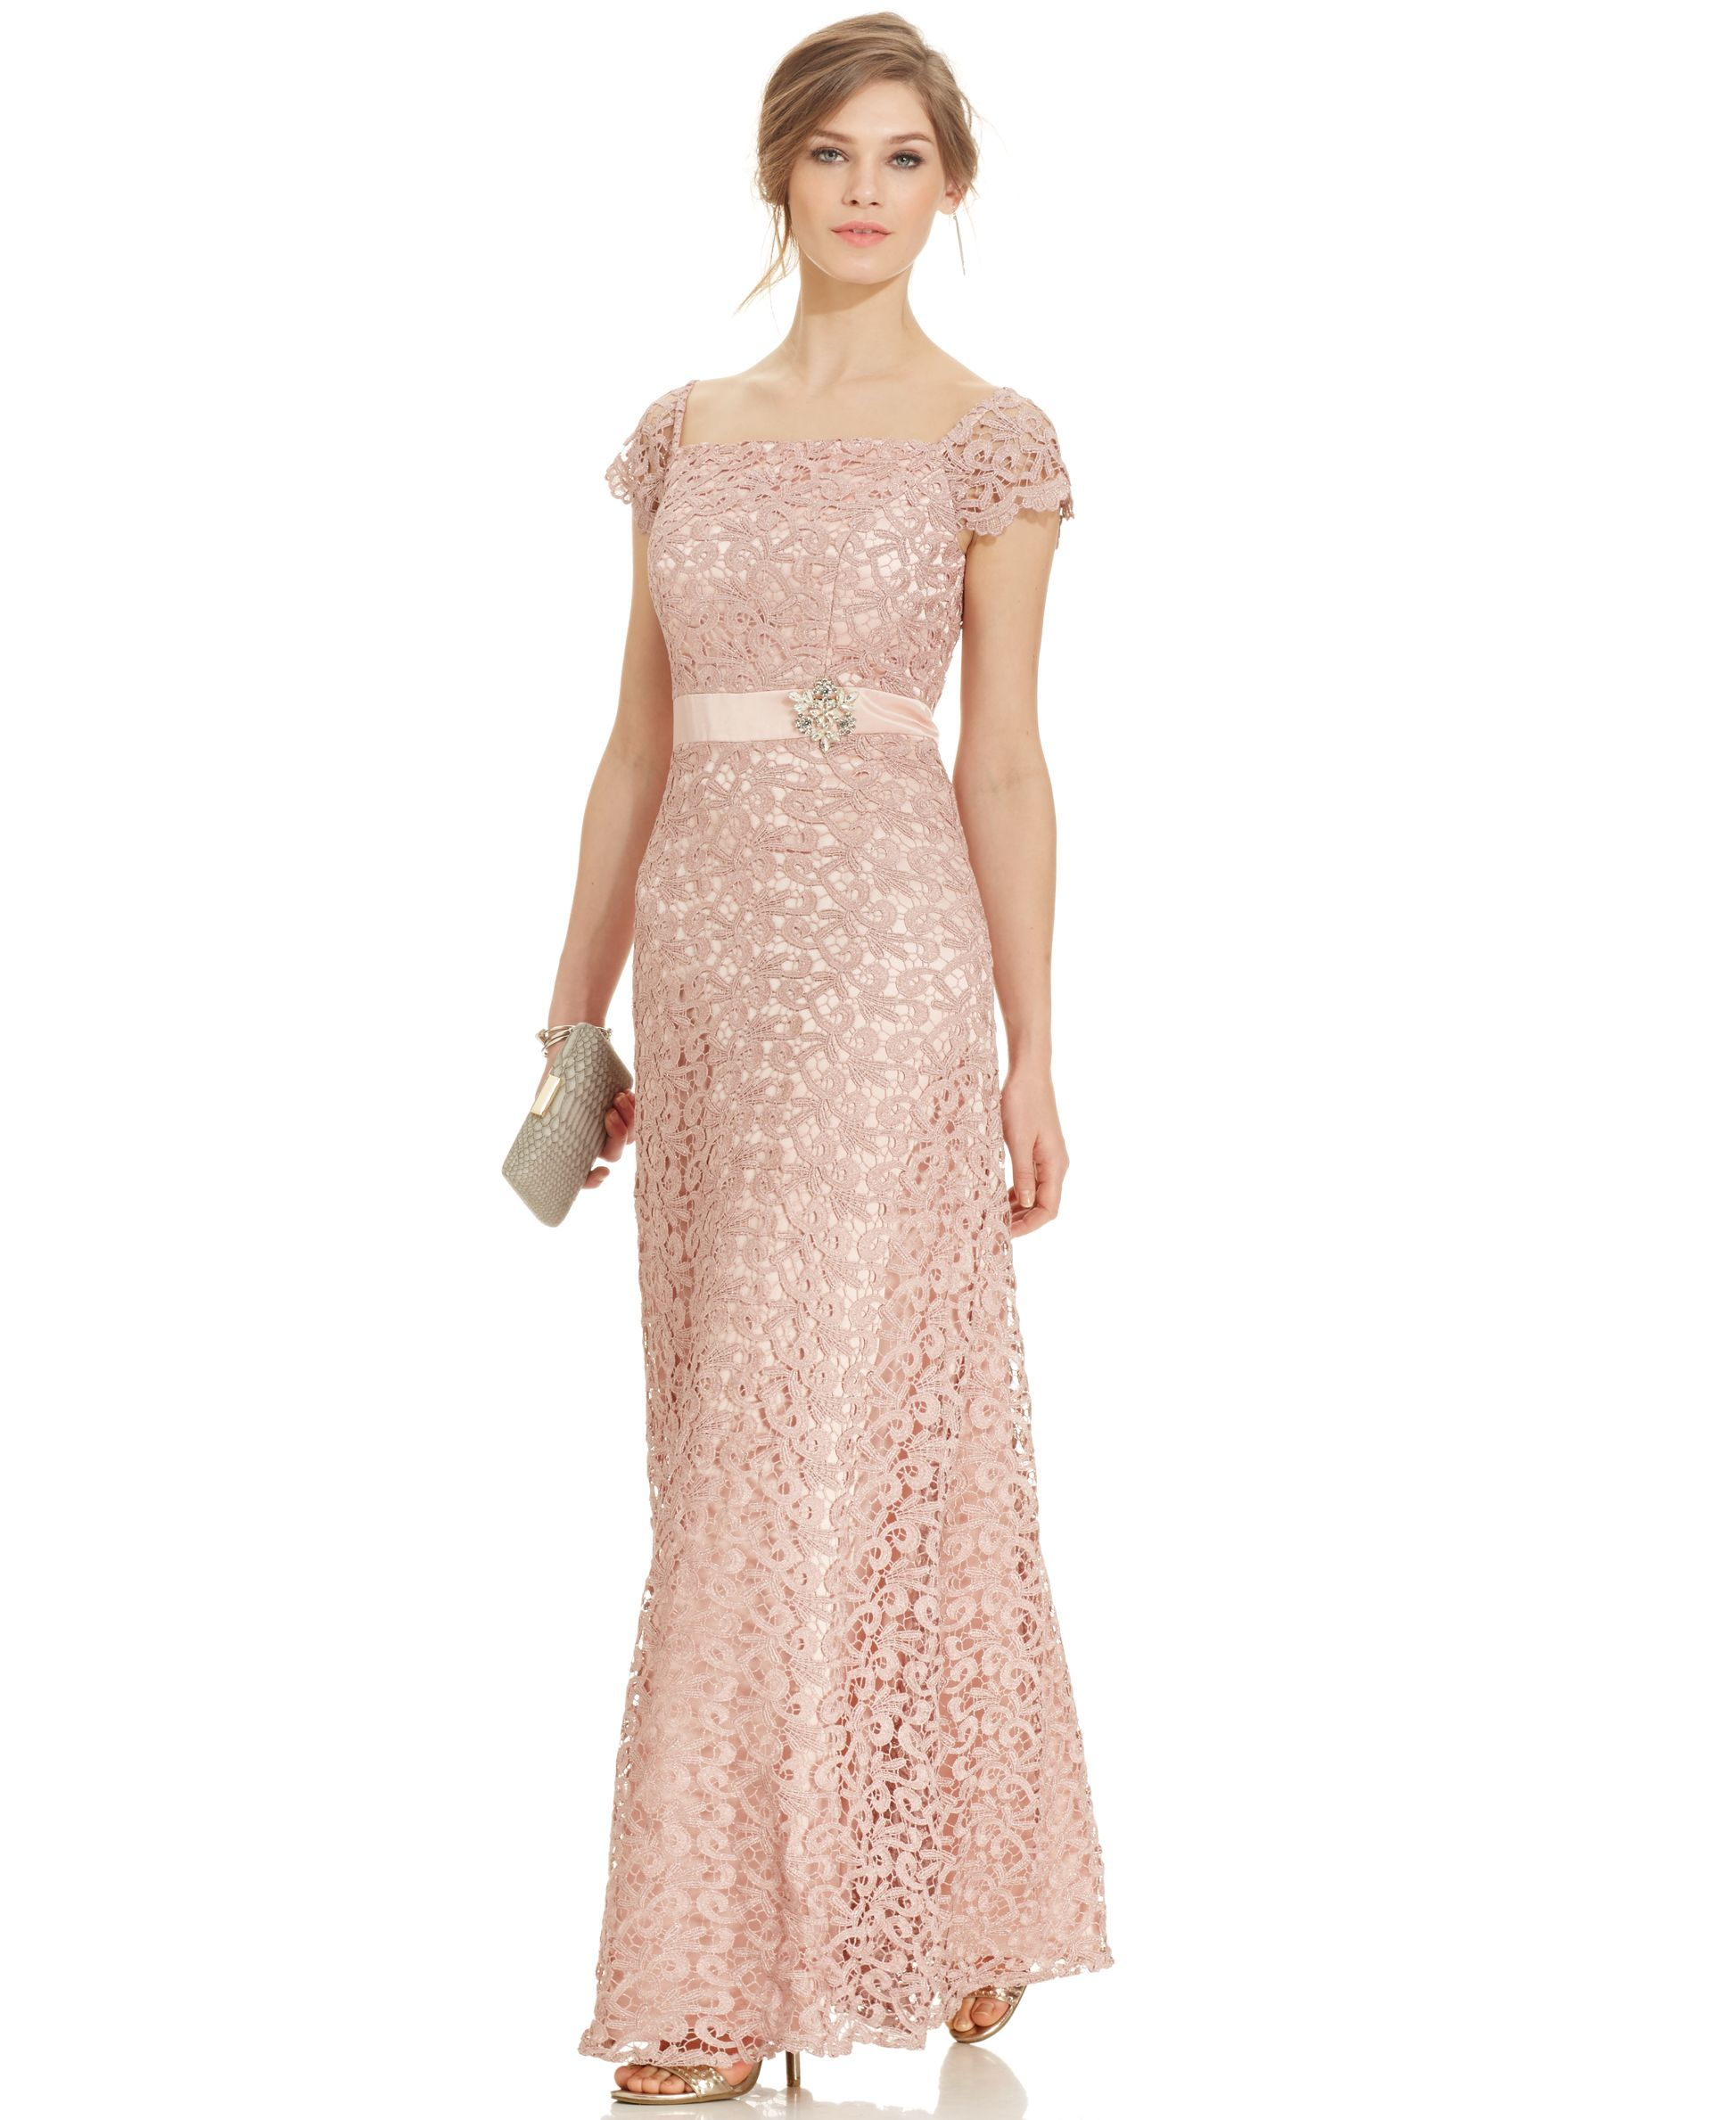 Js Collections Cap-Sleeve Glitter Lace Gown | Products | Pinterest ...